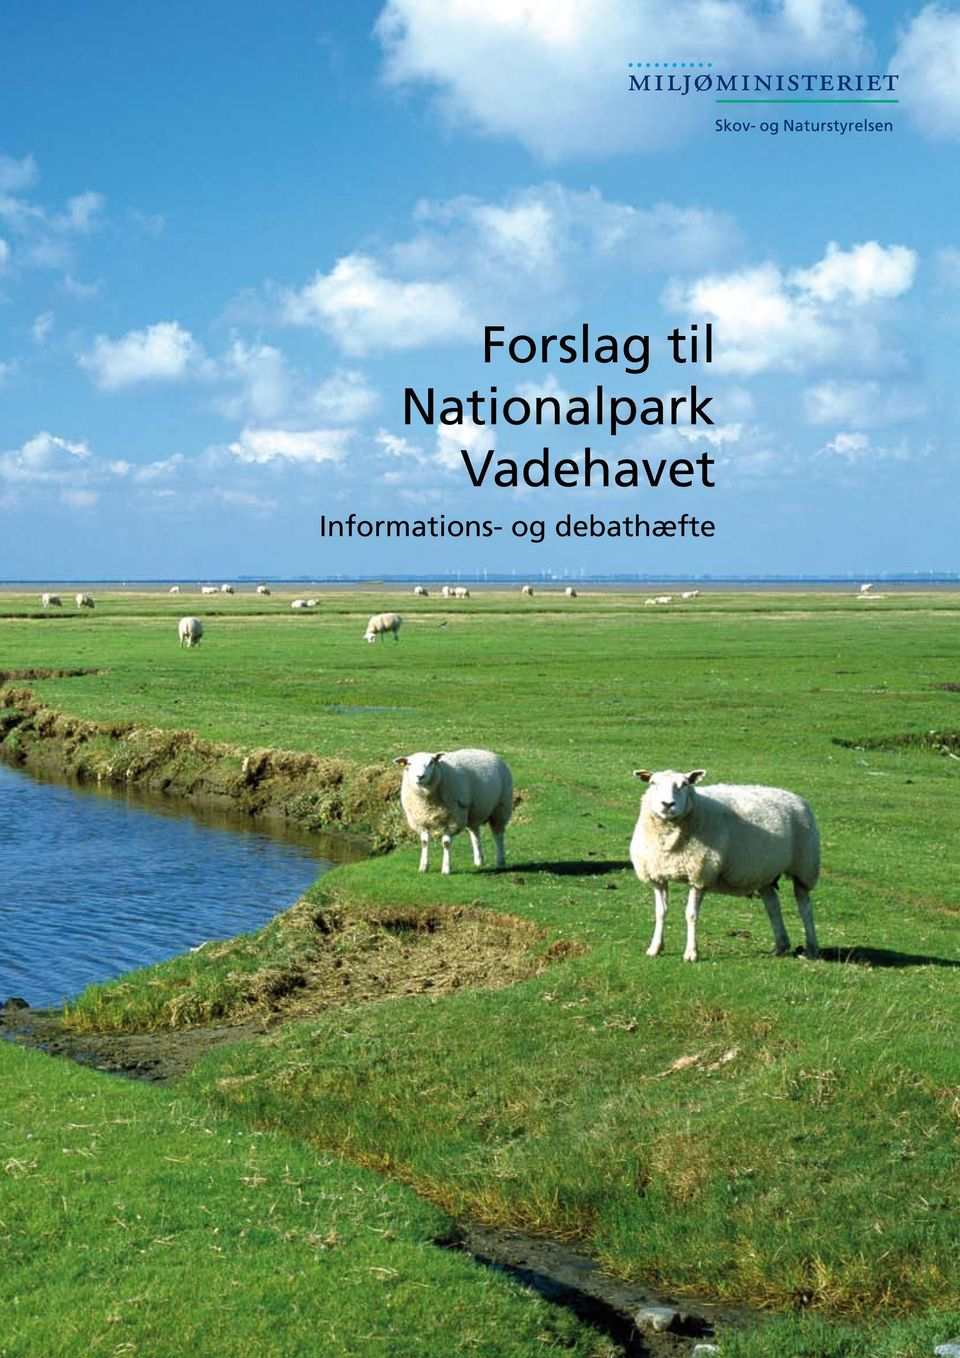 til Nationalpark Vadehavet